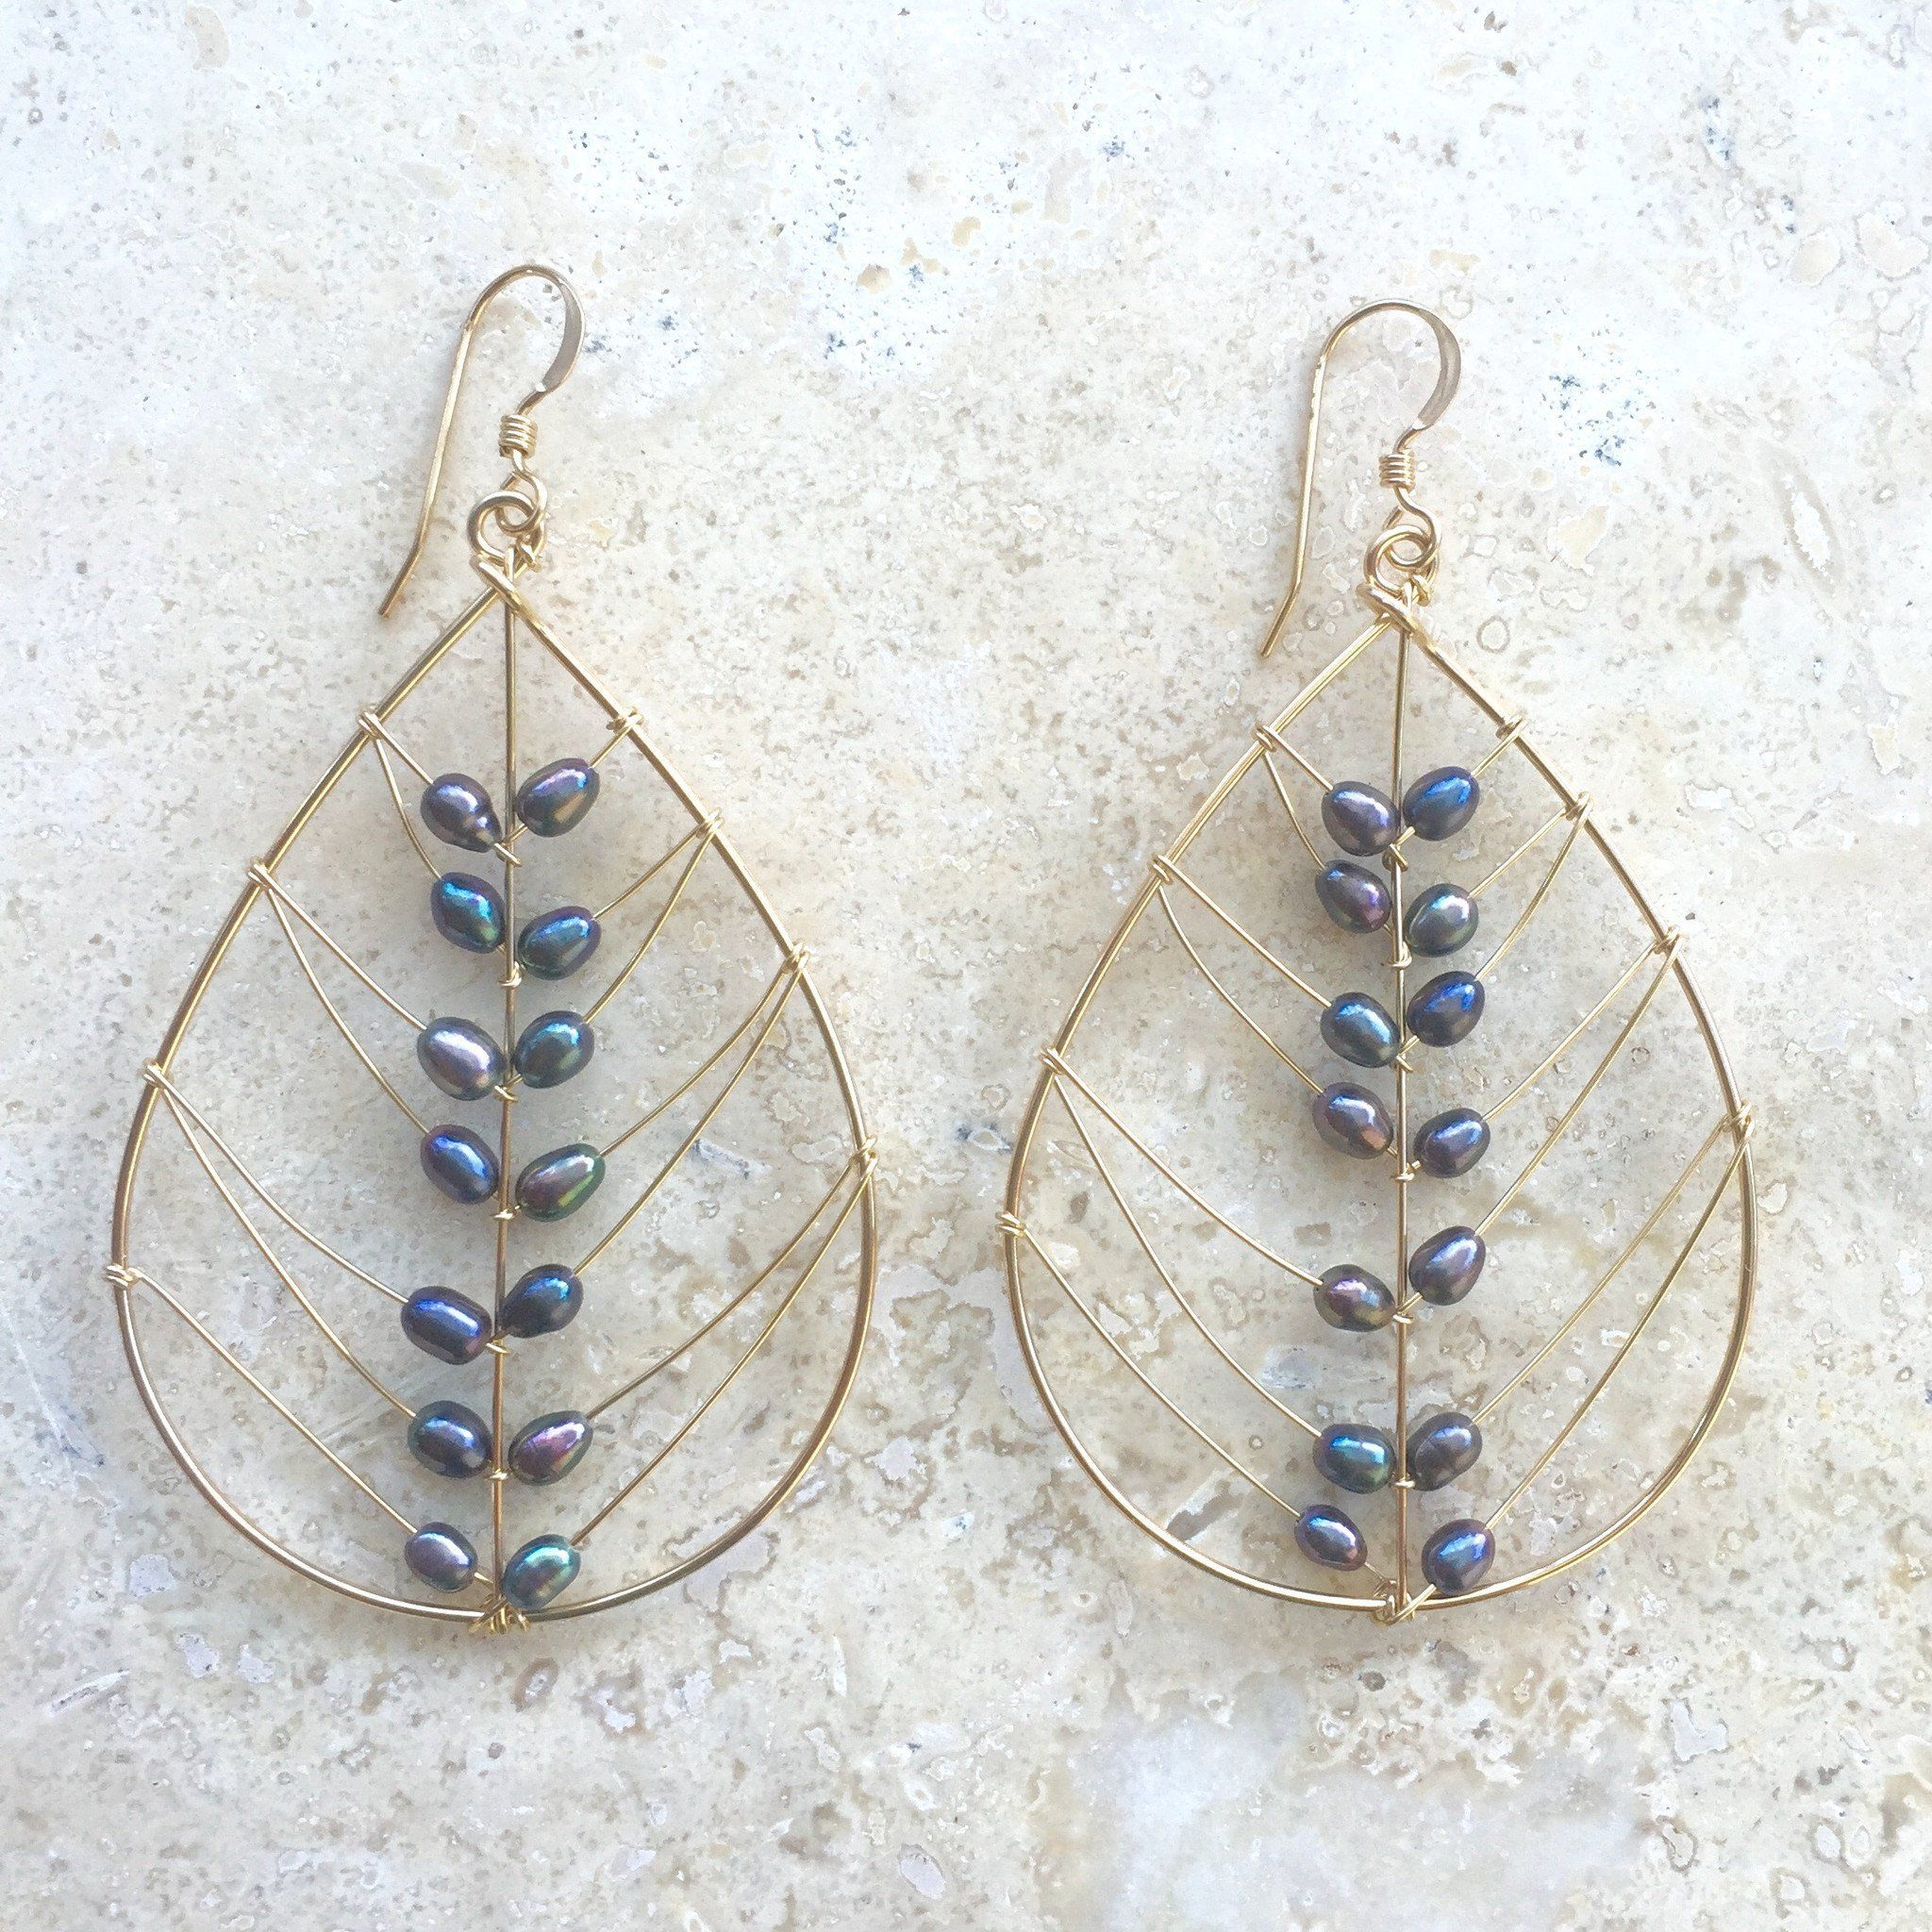 Pin by Jewelry Inspiration on Jewelry Making | Pinterest | Wire ...